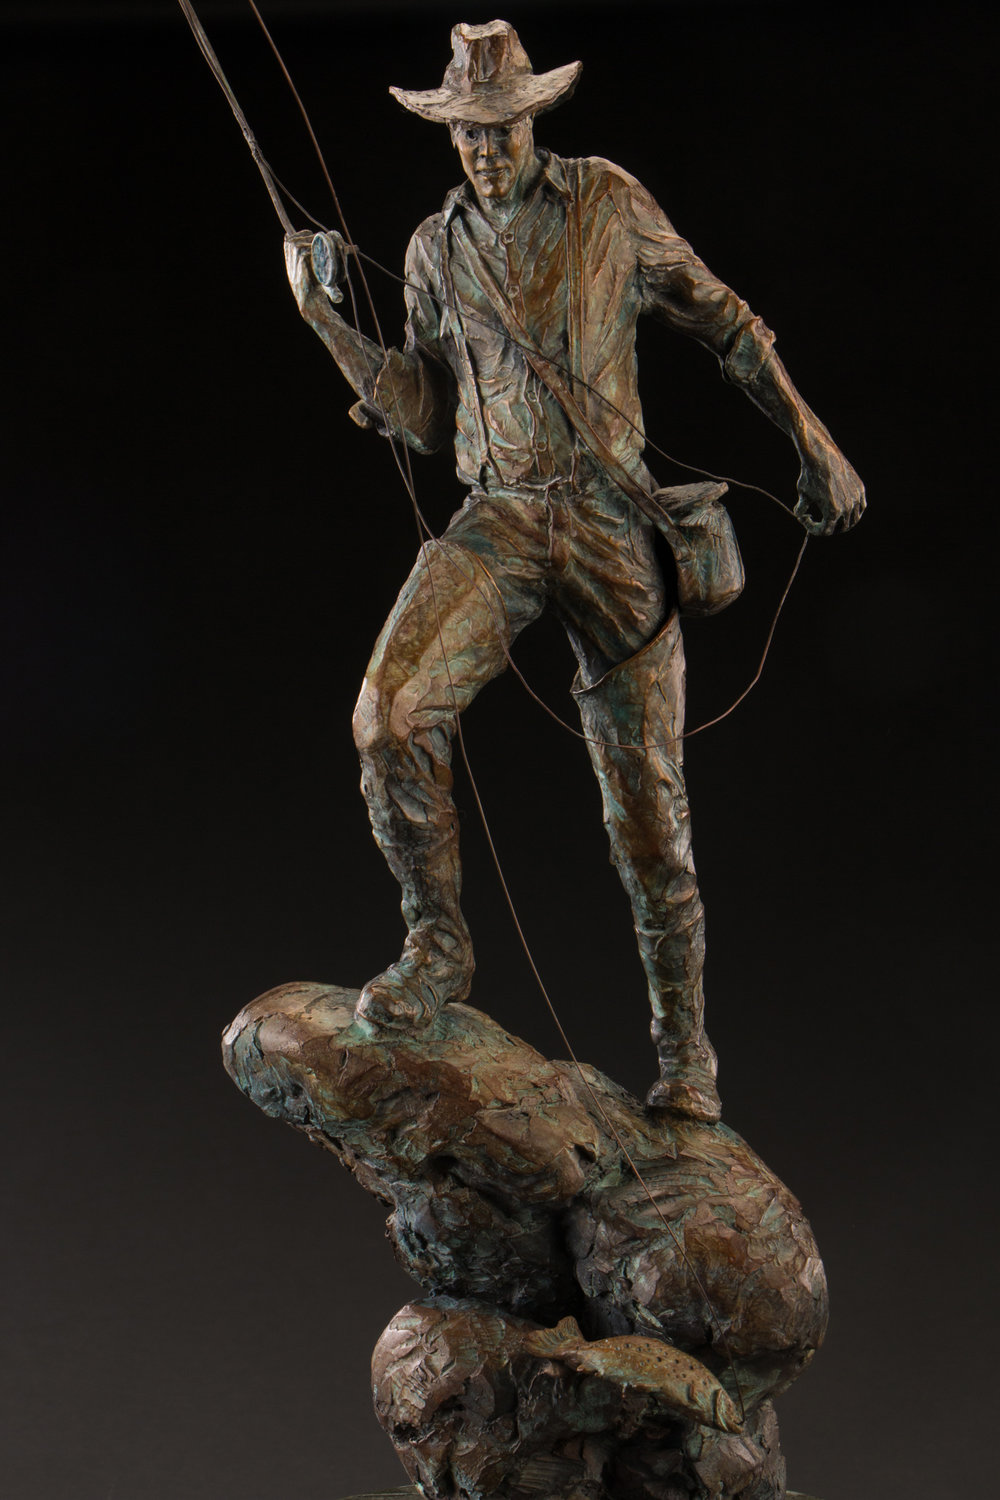 """Hooked 